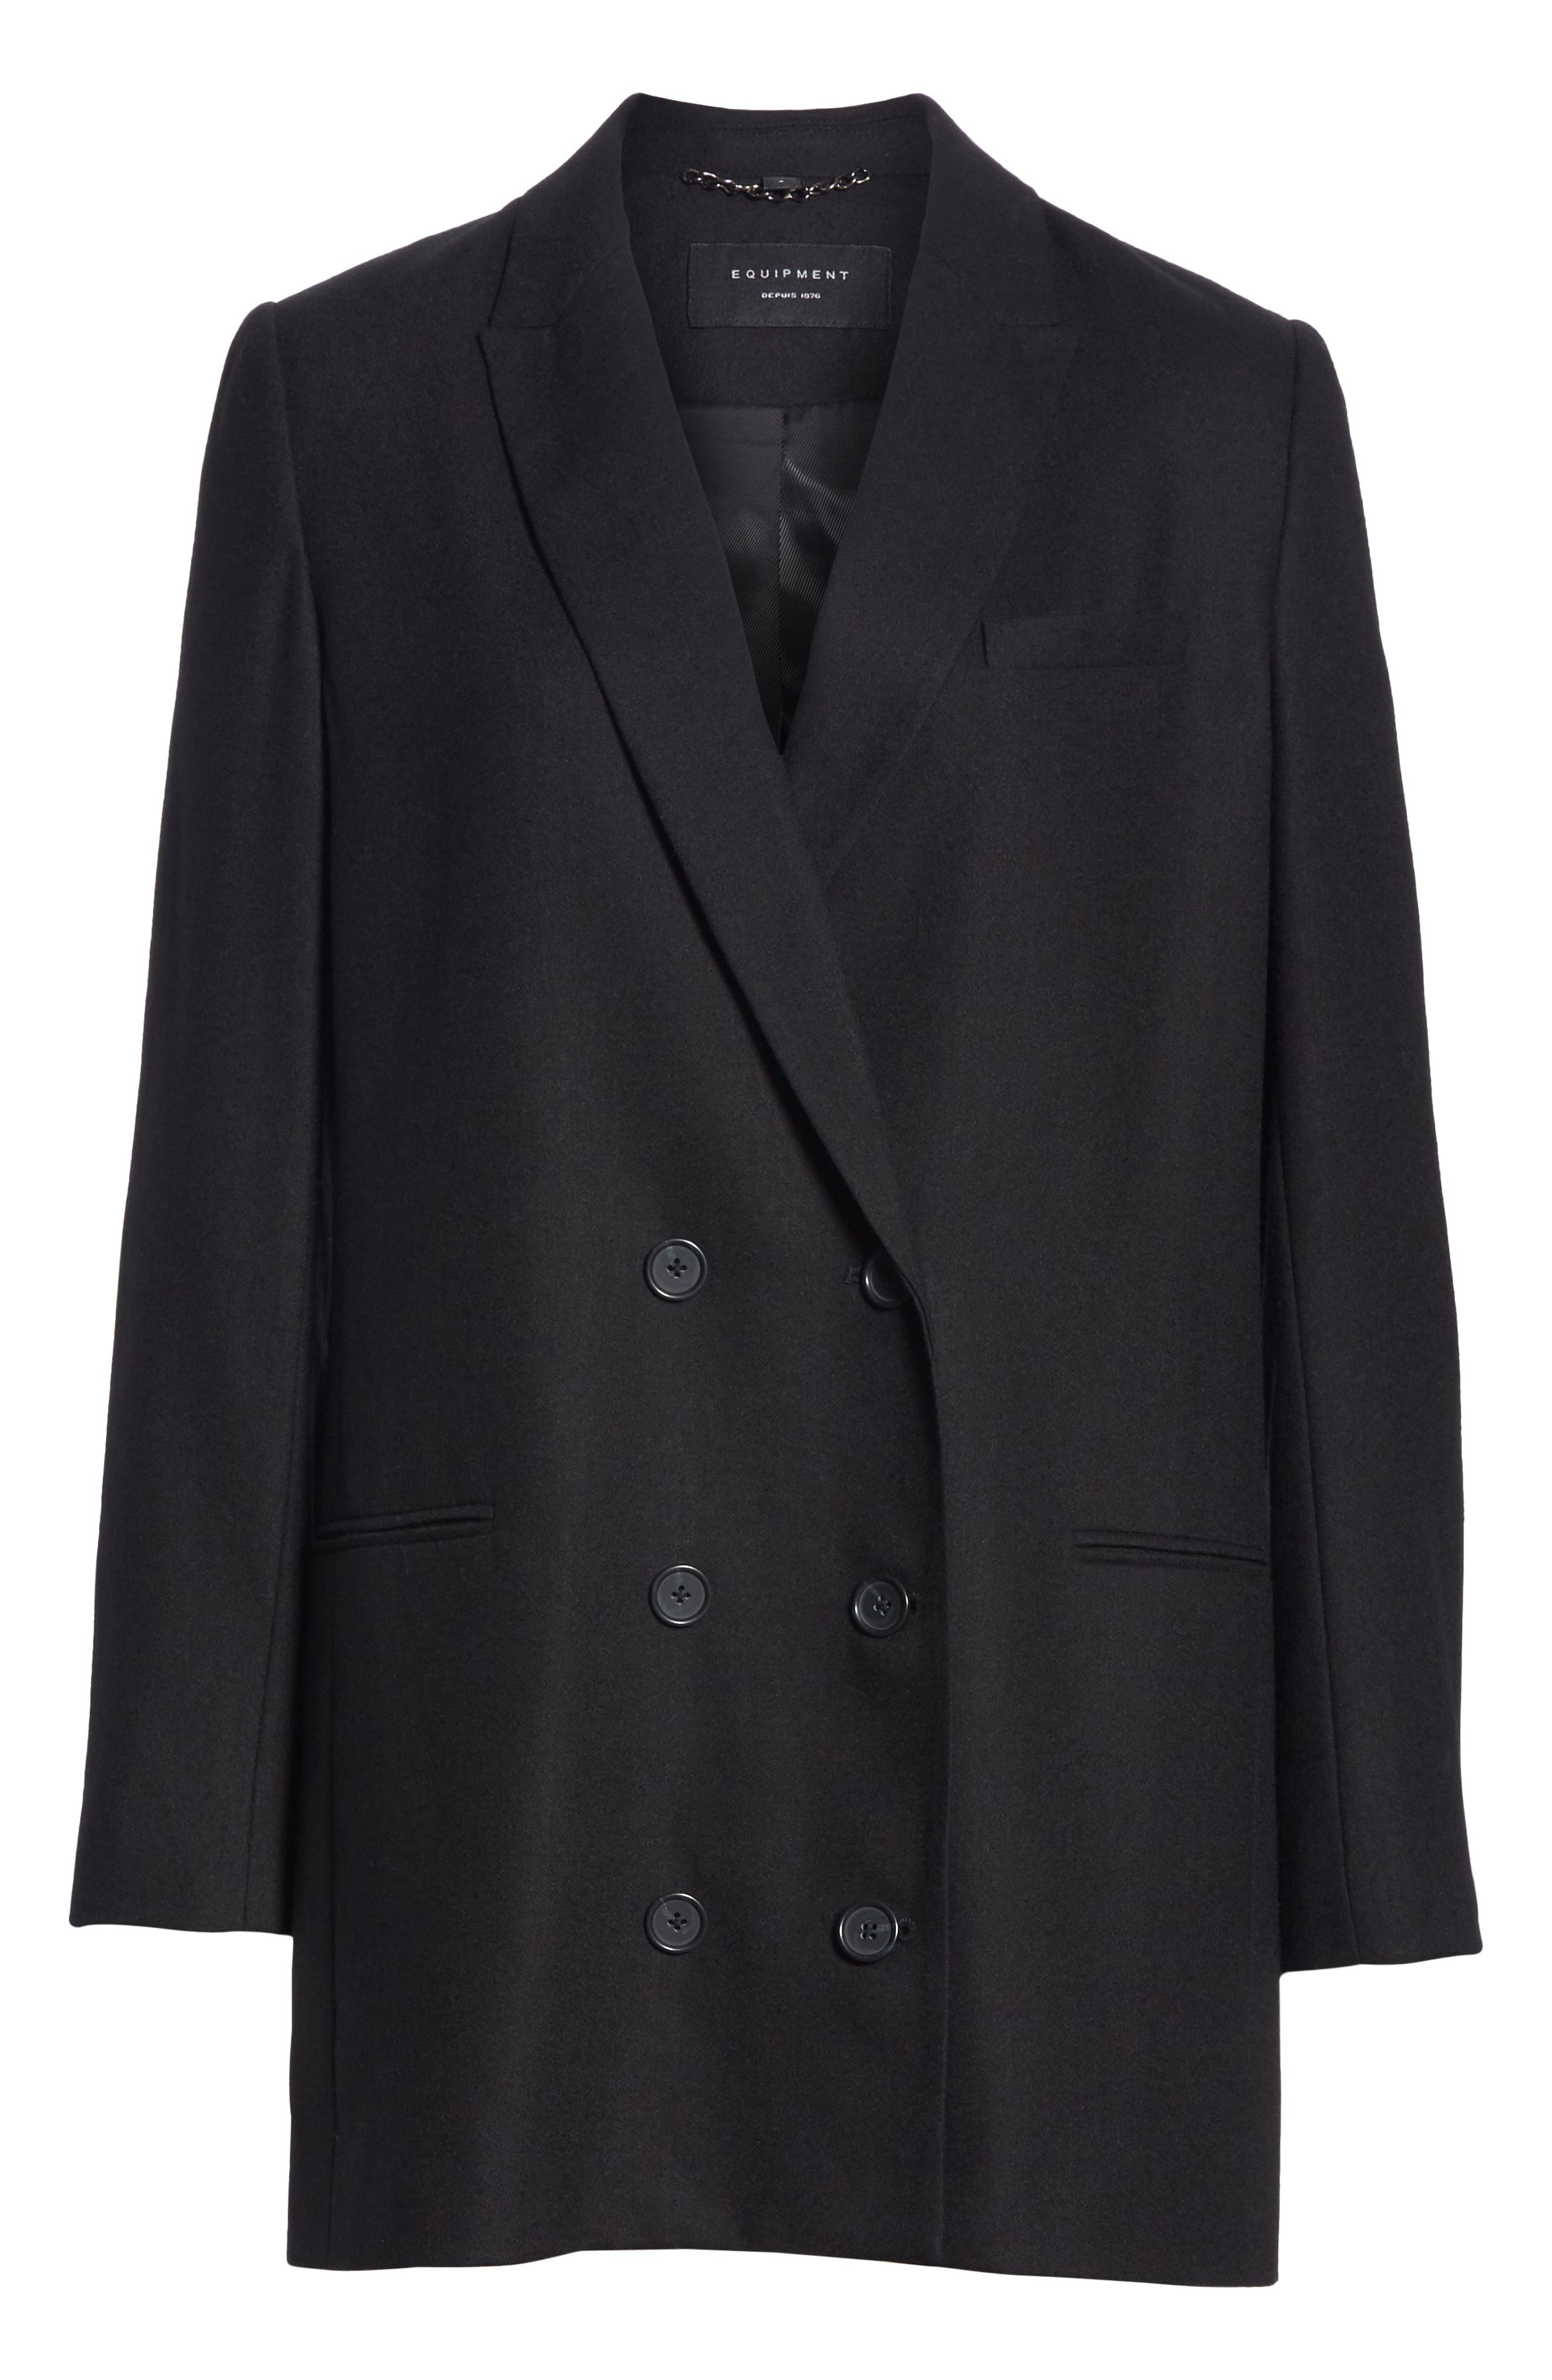 Norden Double Breasted Wool Jacket,                             Alternate thumbnail 6, color,                             001